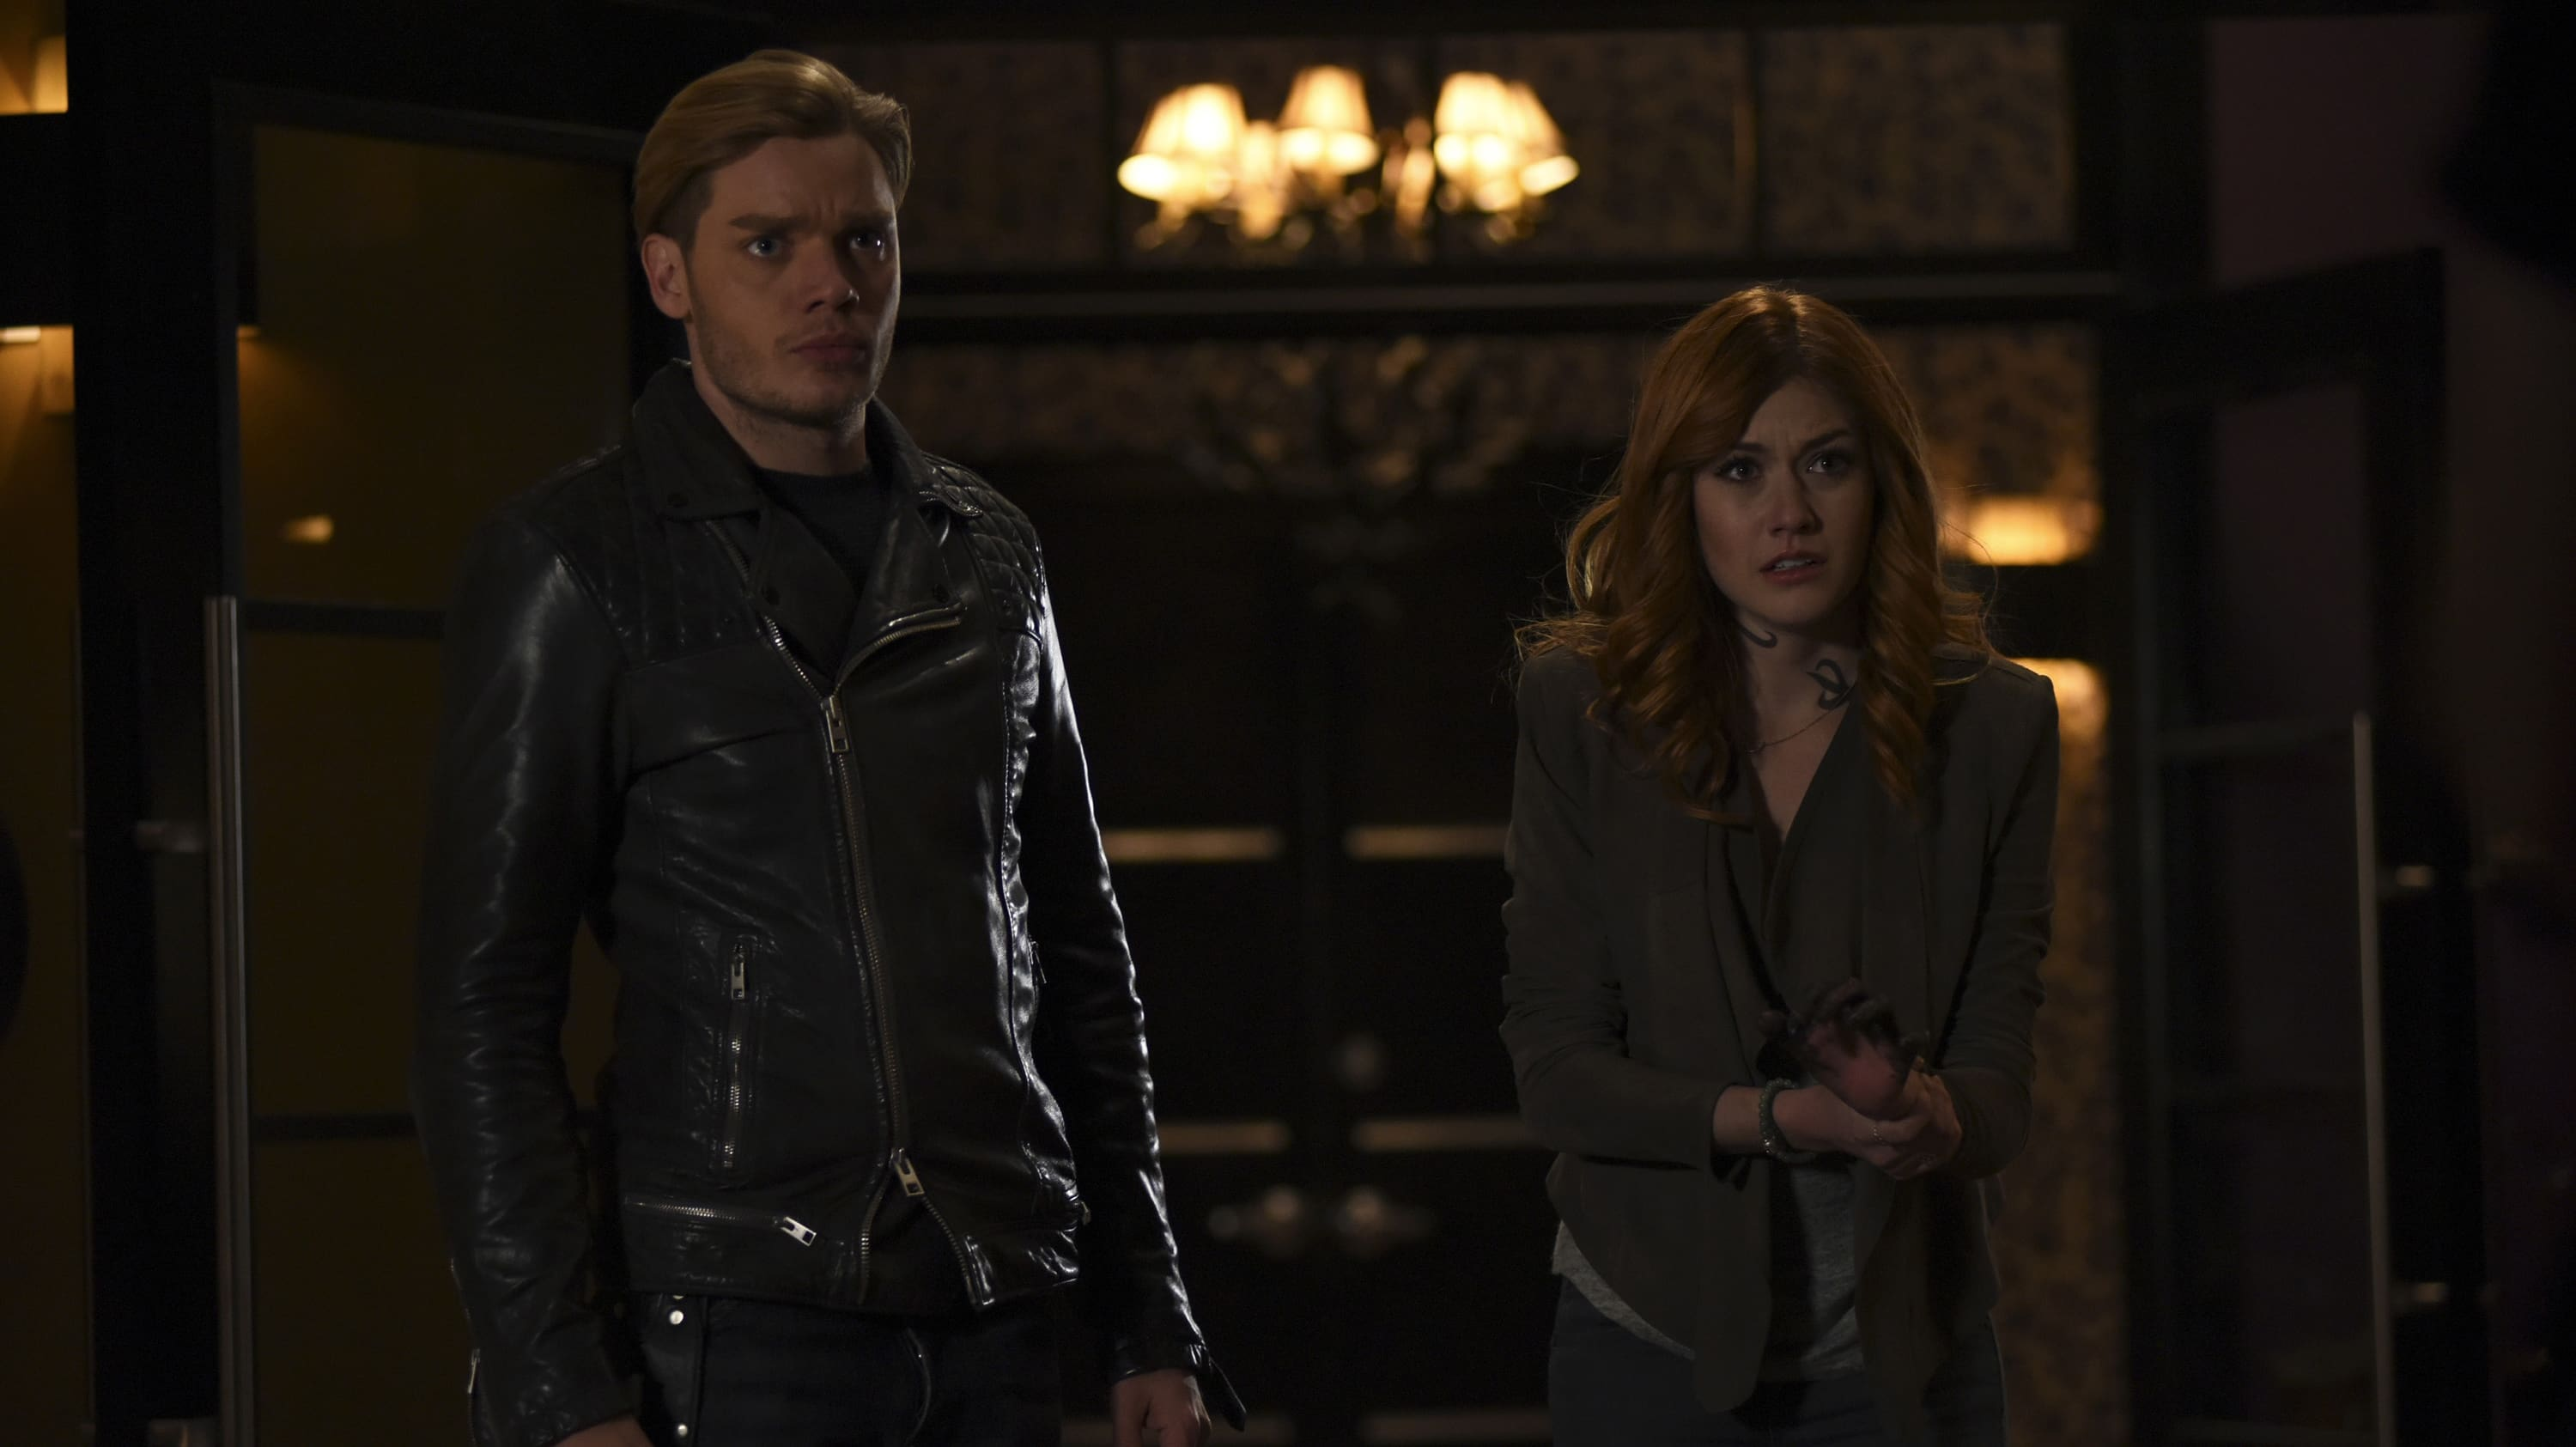 Shadowhunters - Season 2 Episode 9 : Bound by Blood